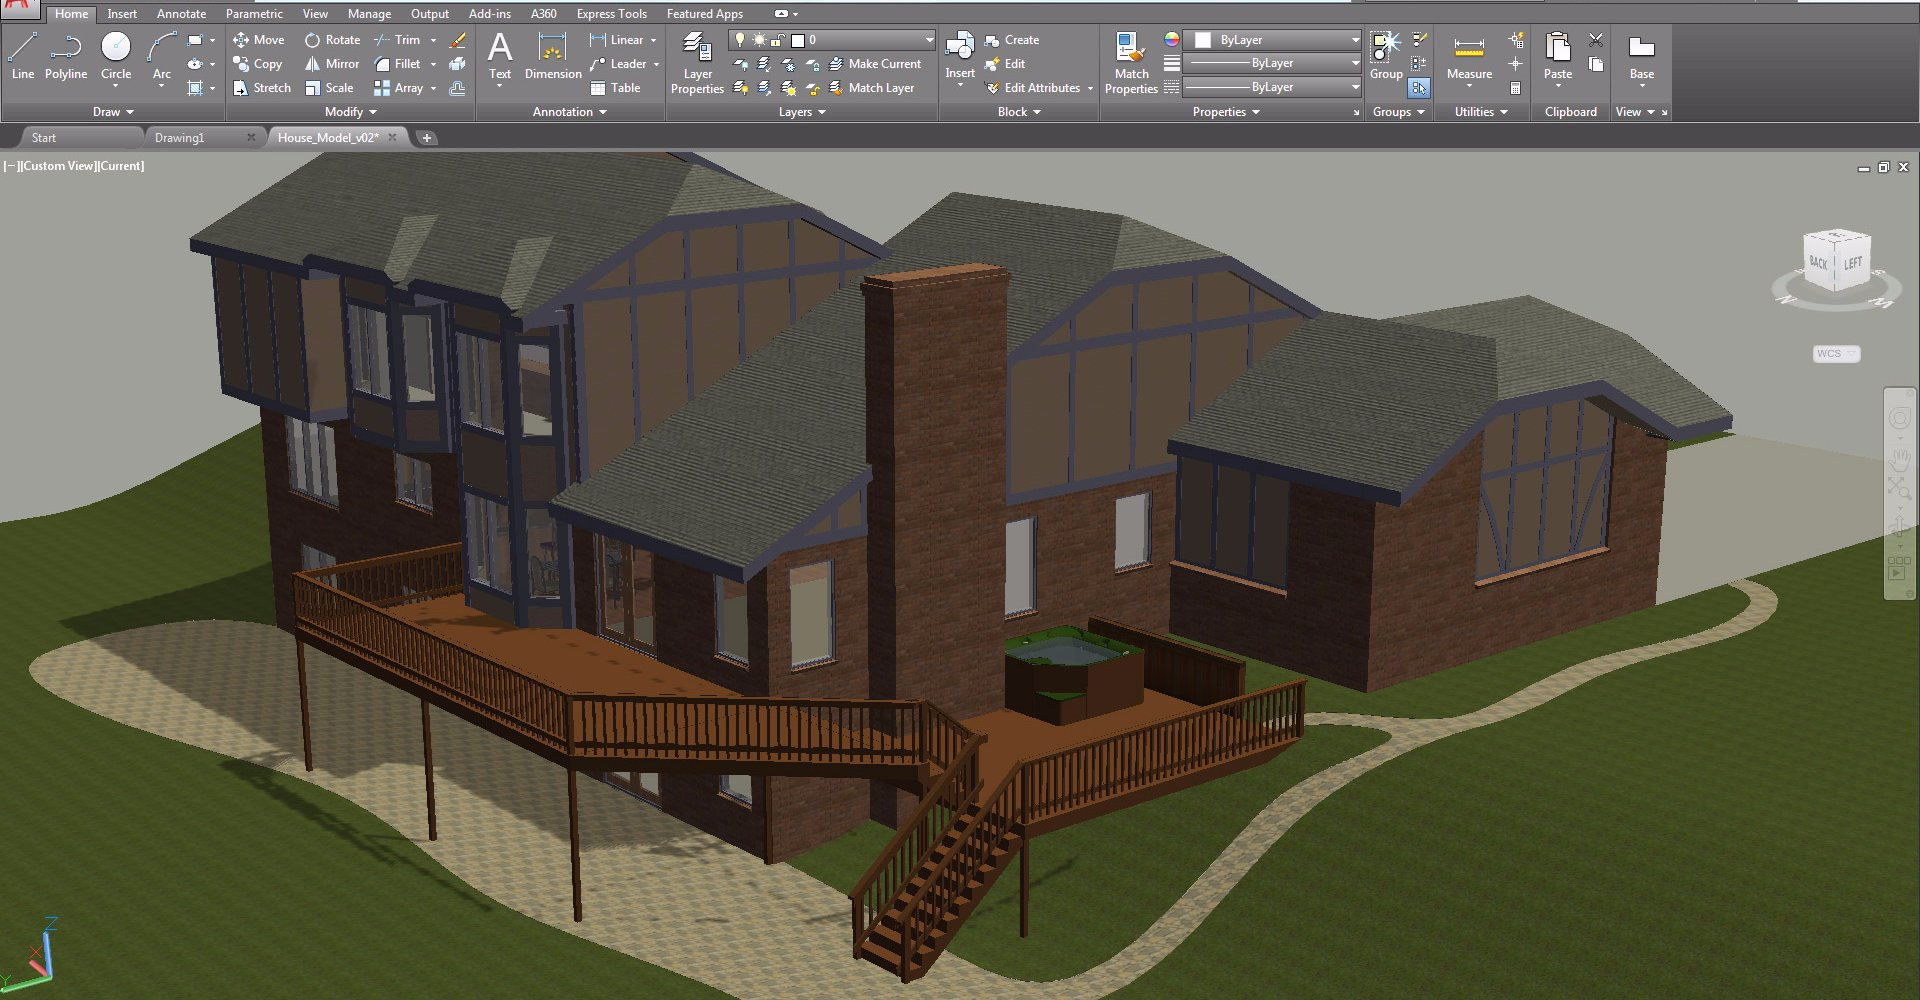 Free building drawing at free for for 2d architectural drawing software free